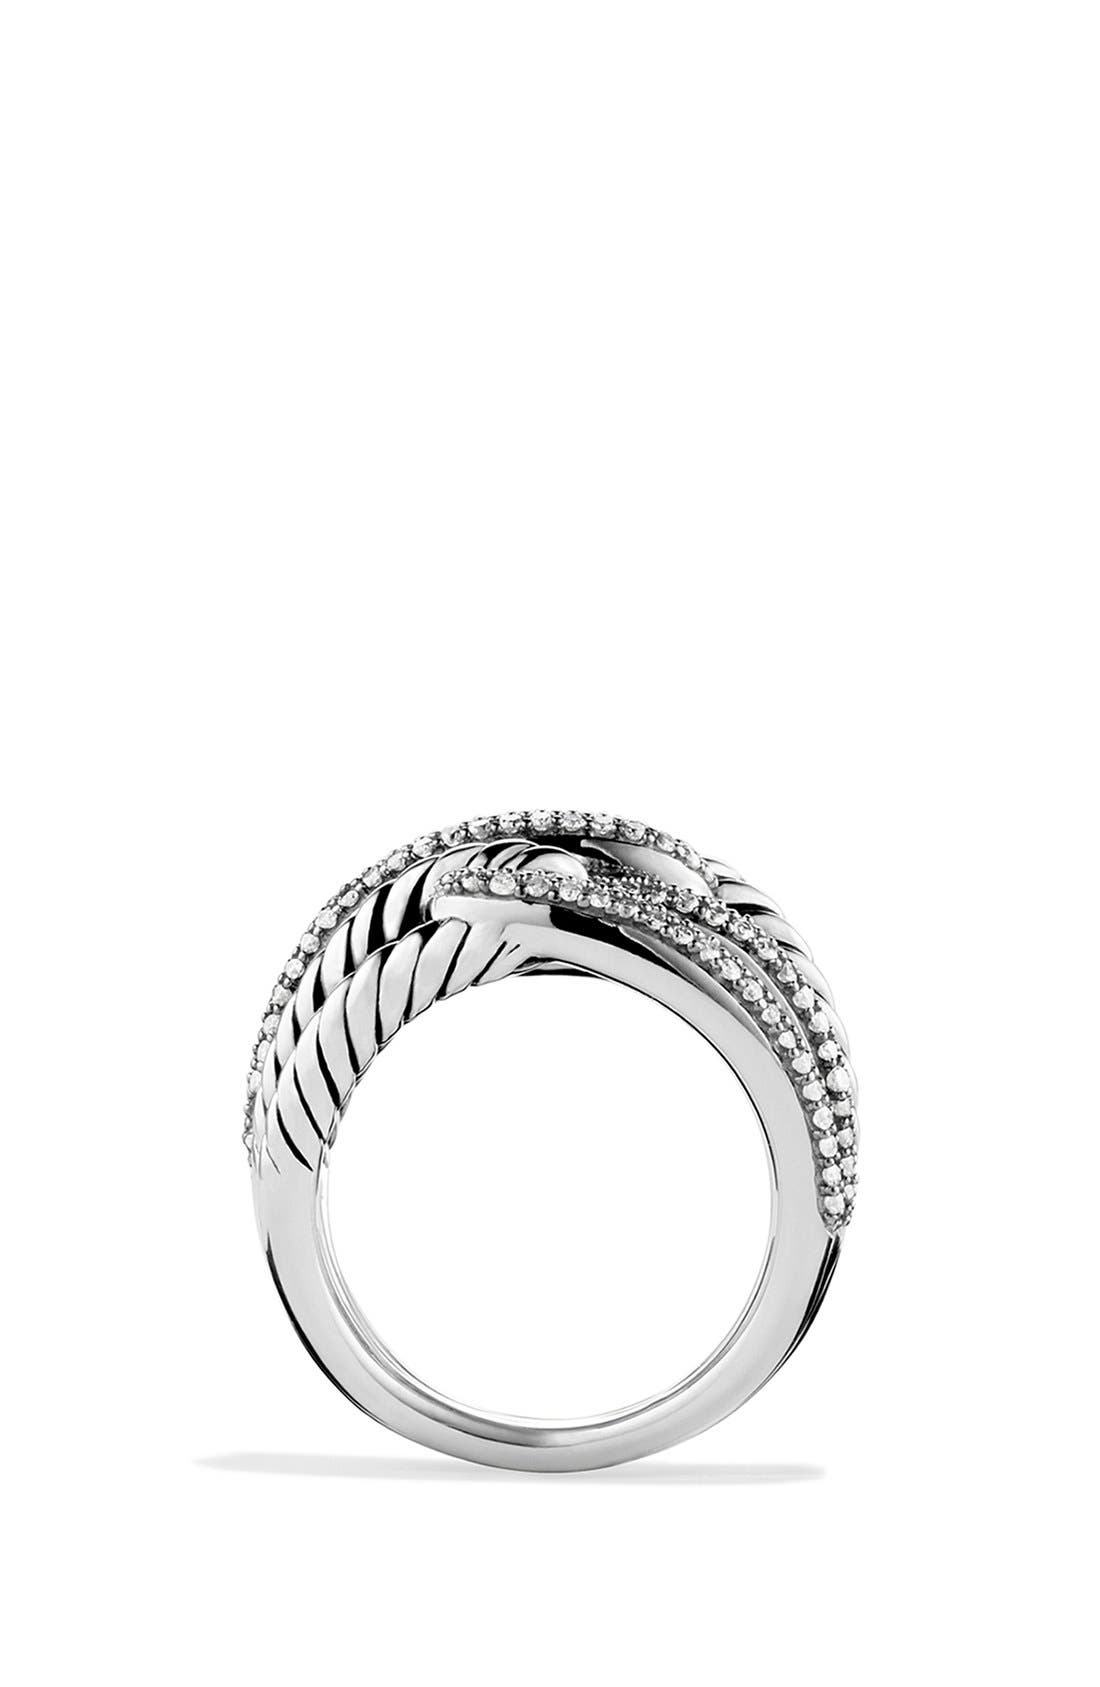 'Labyrinth' Triple-Loop Ring with Diamonds,                             Alternate thumbnail 5, color,                             DIAMOND